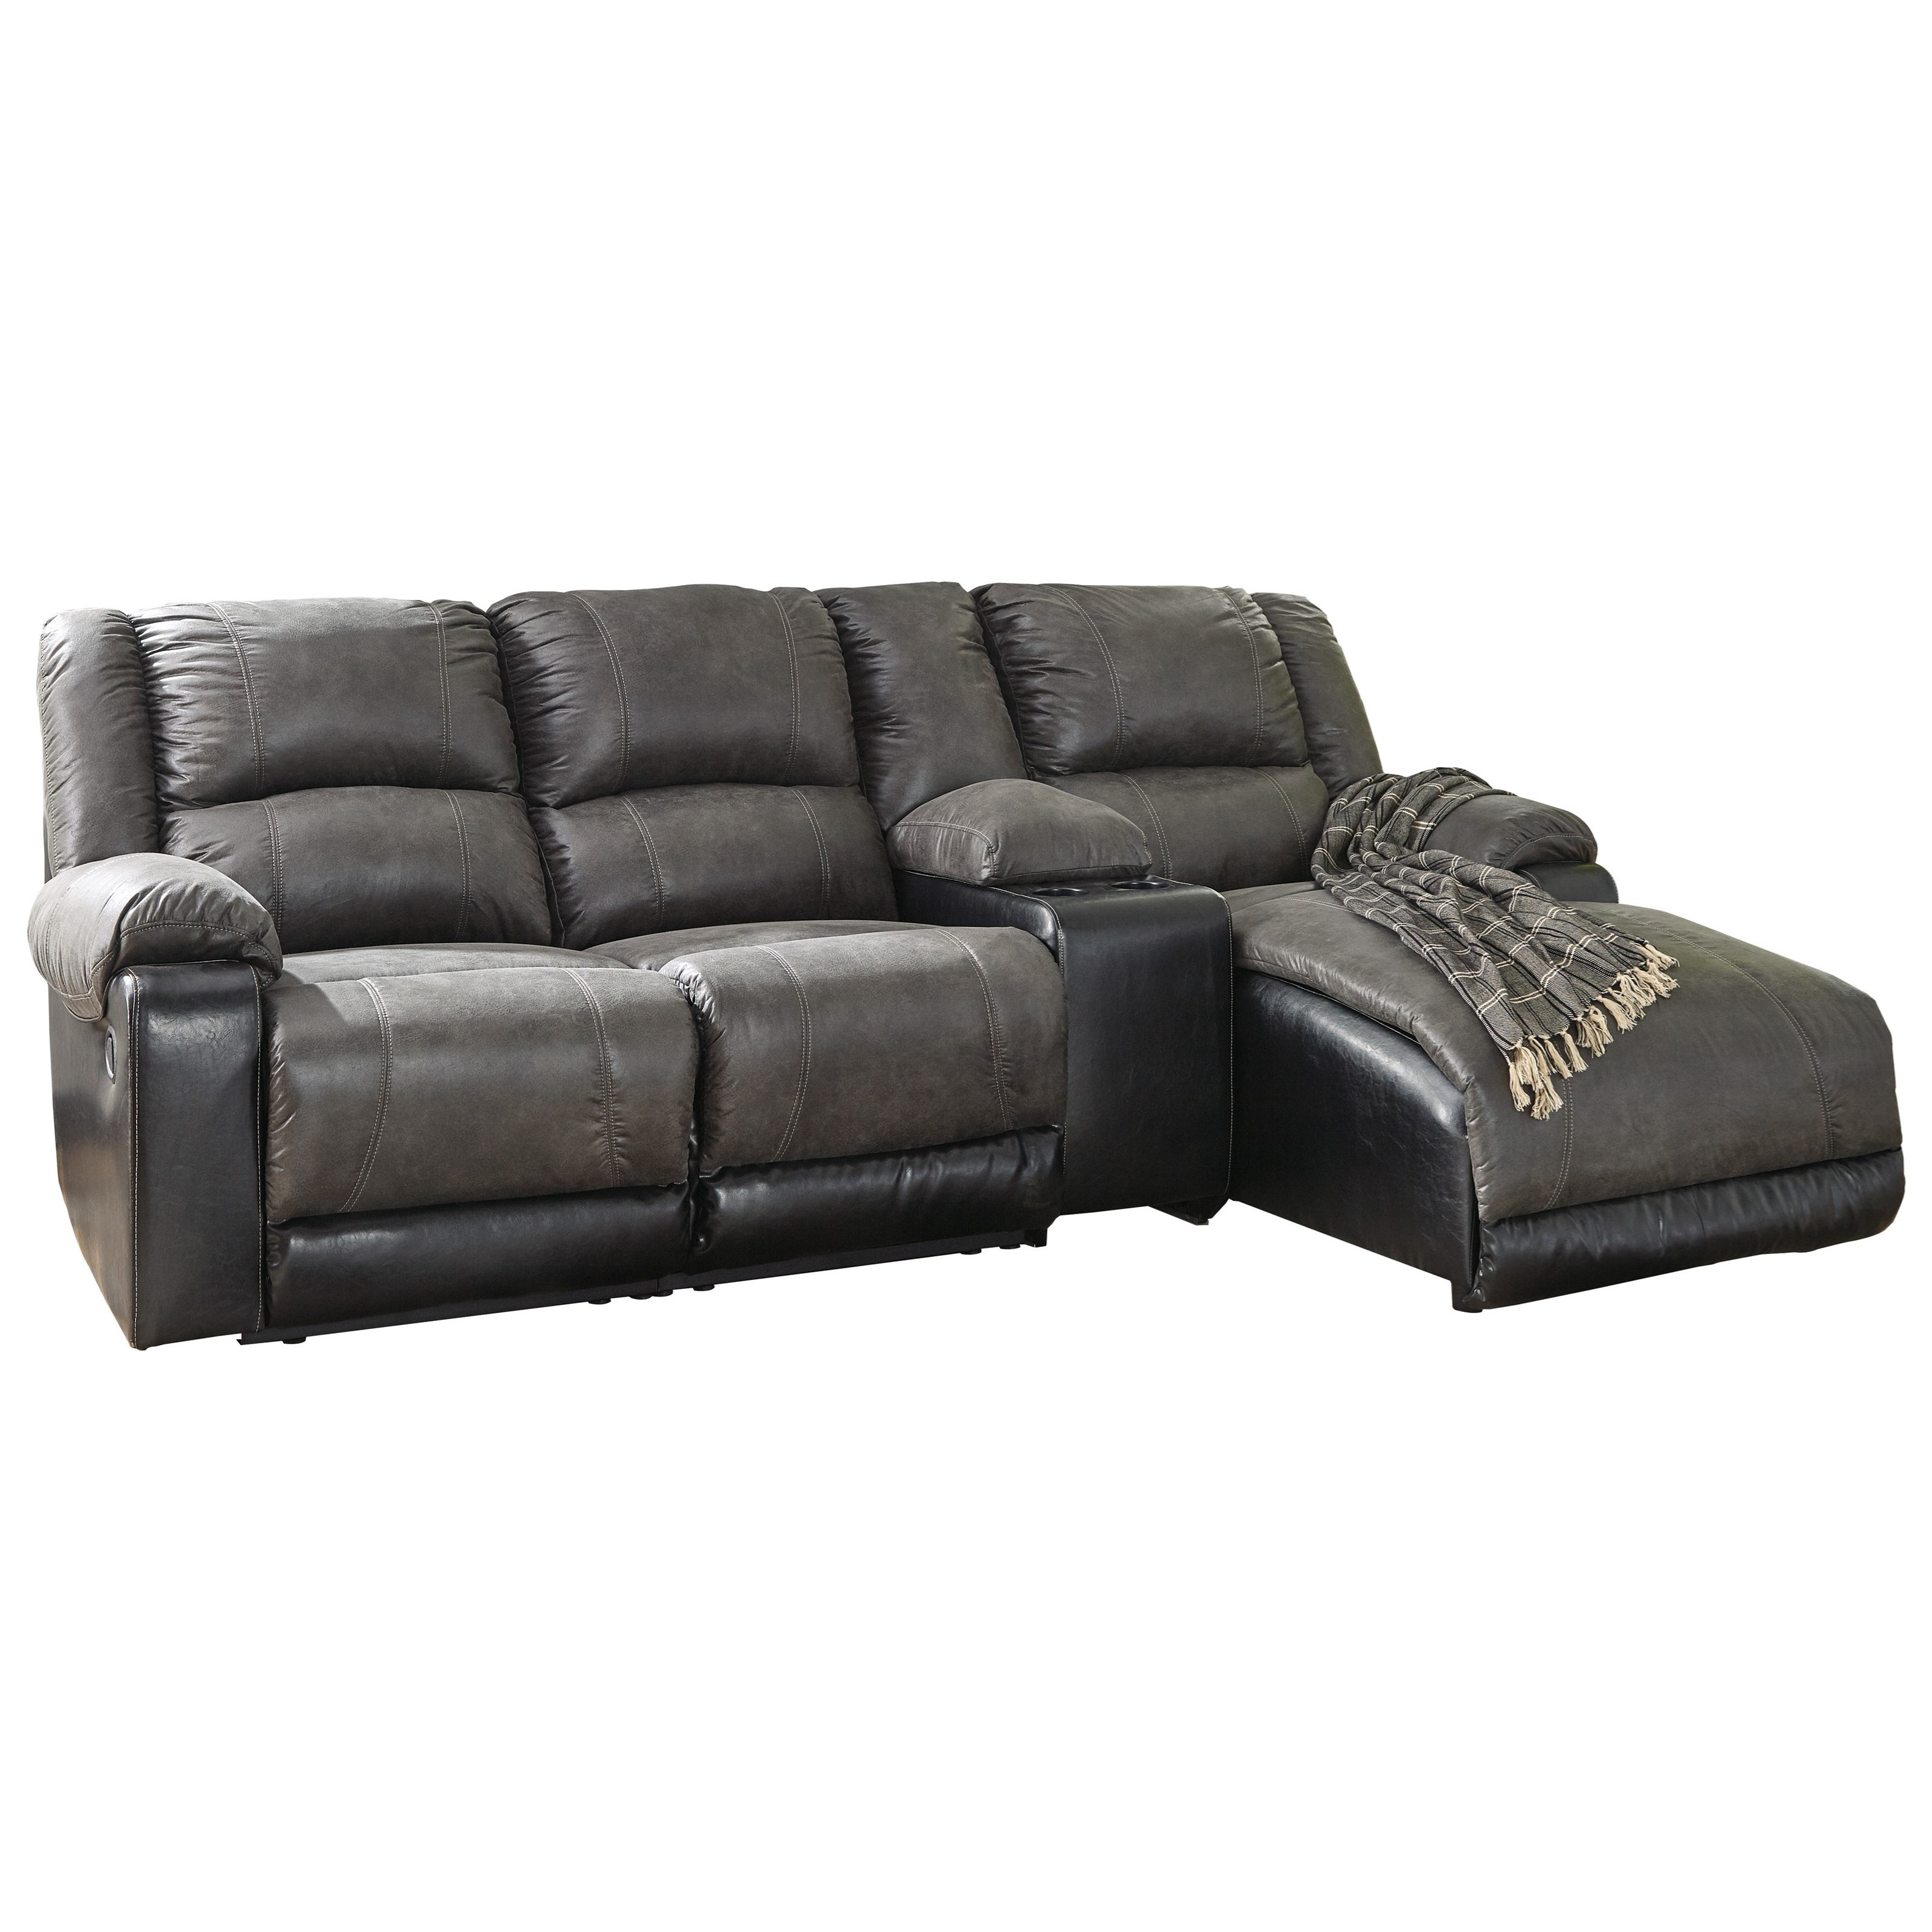 Nantahala Reclining Chaise Sofa by Signature Design by Ashley at Rife's Home Furniture